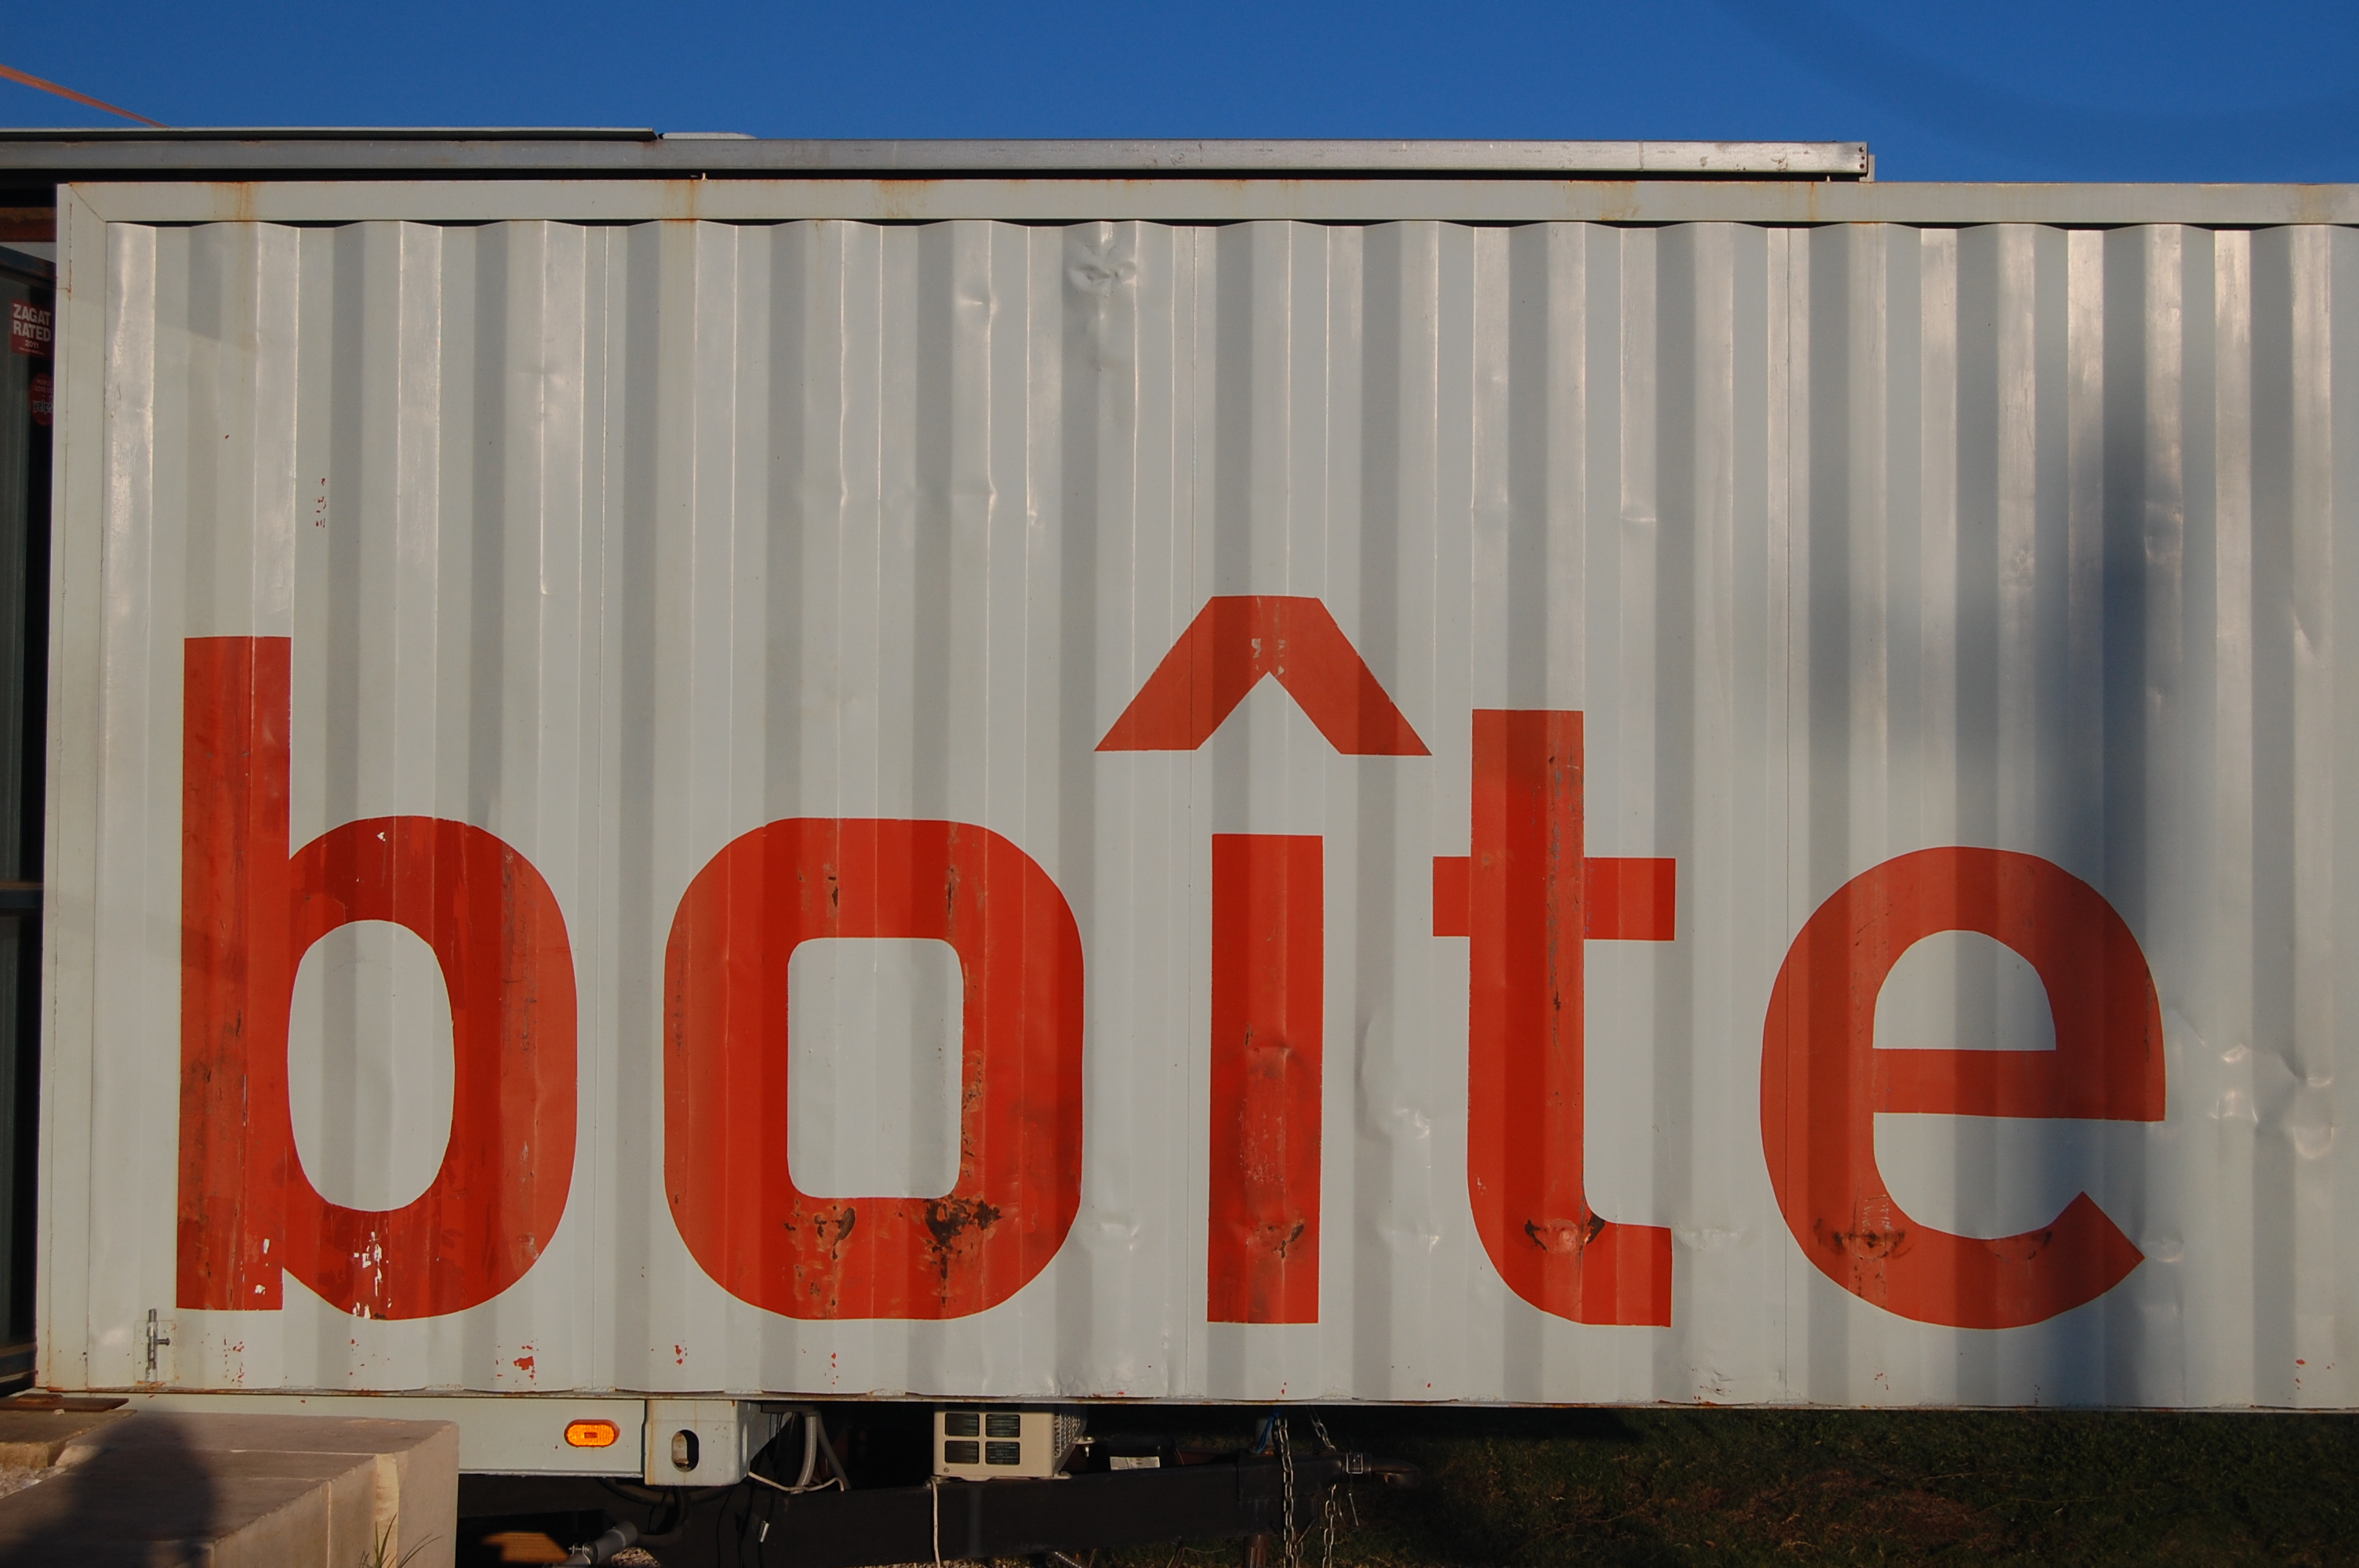 La Boite Coming To Downtown Austin's Old Bakery Park